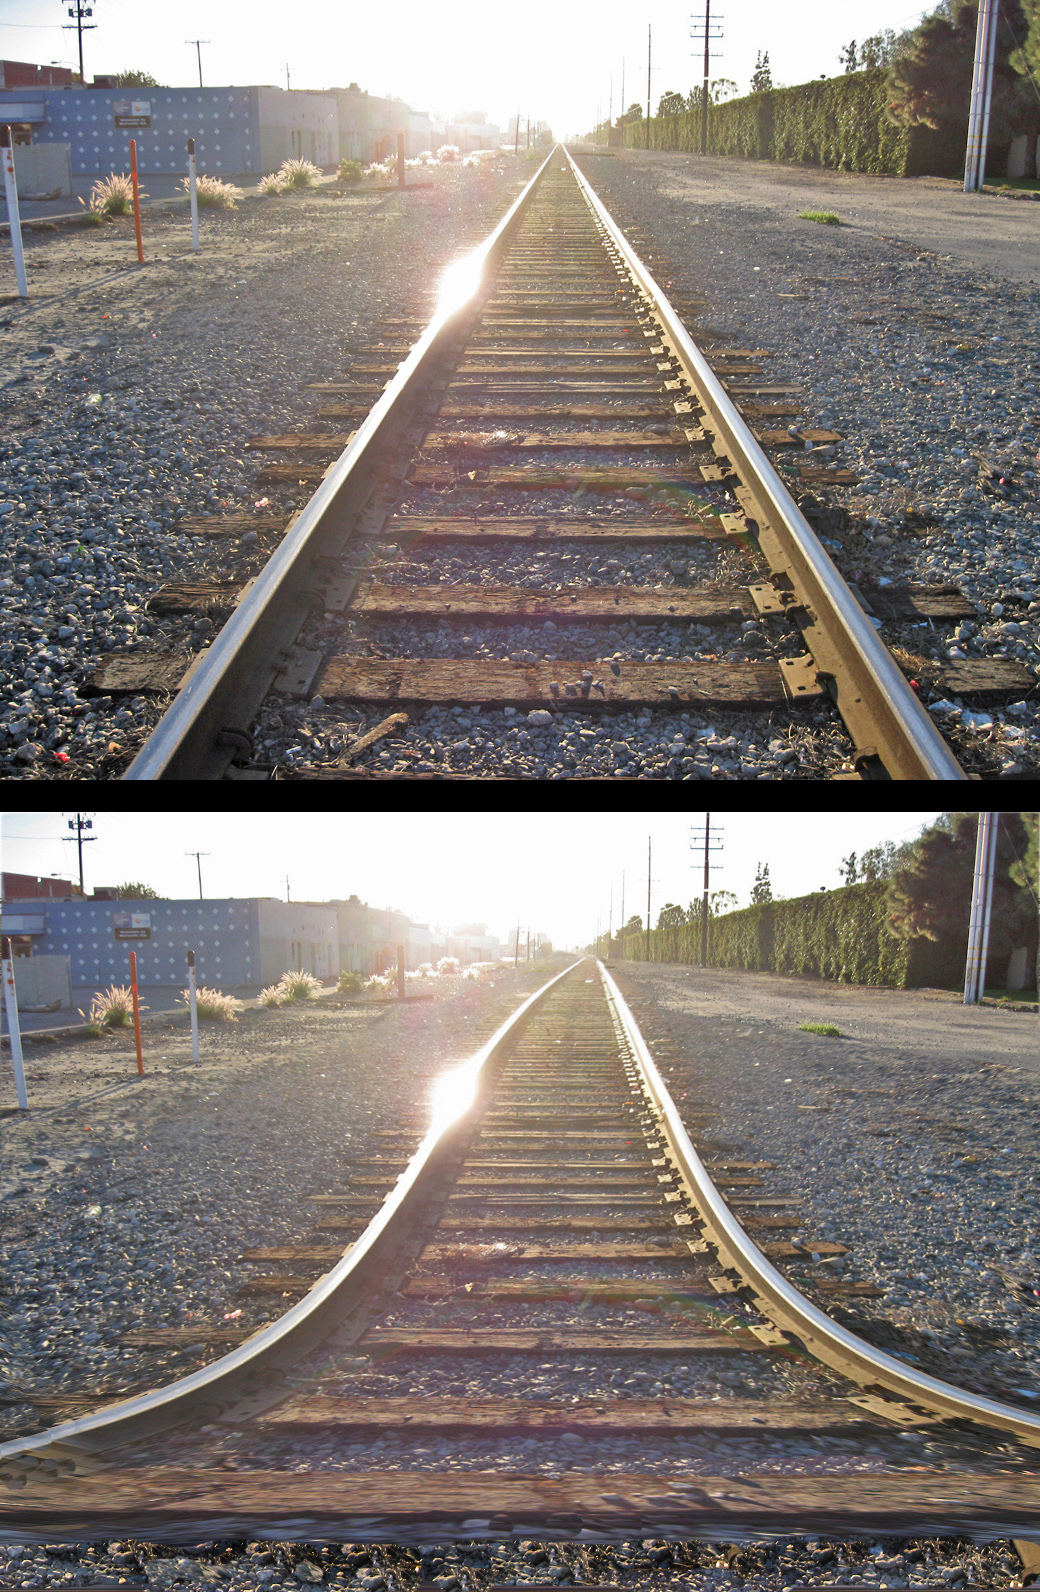 Railroad tracks - with variation